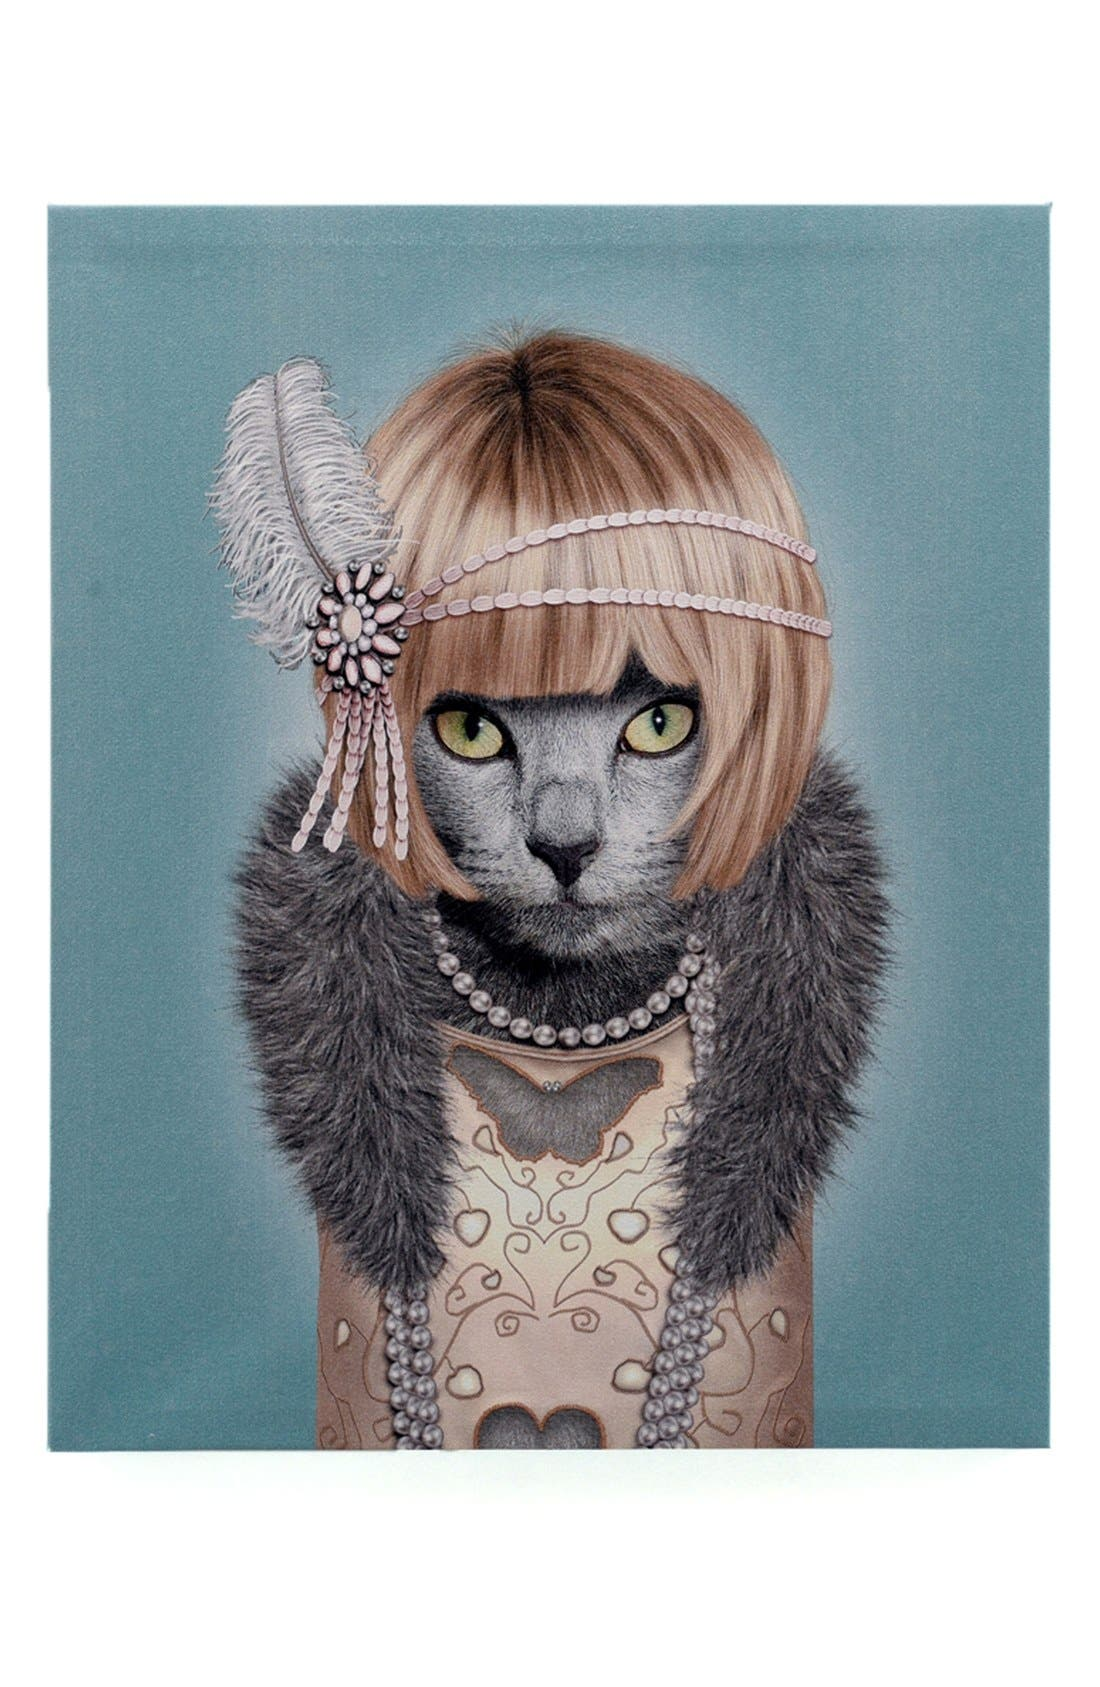 EMPIRE ART DIRECT 'Pets Rock™ - Daisy' Giclée